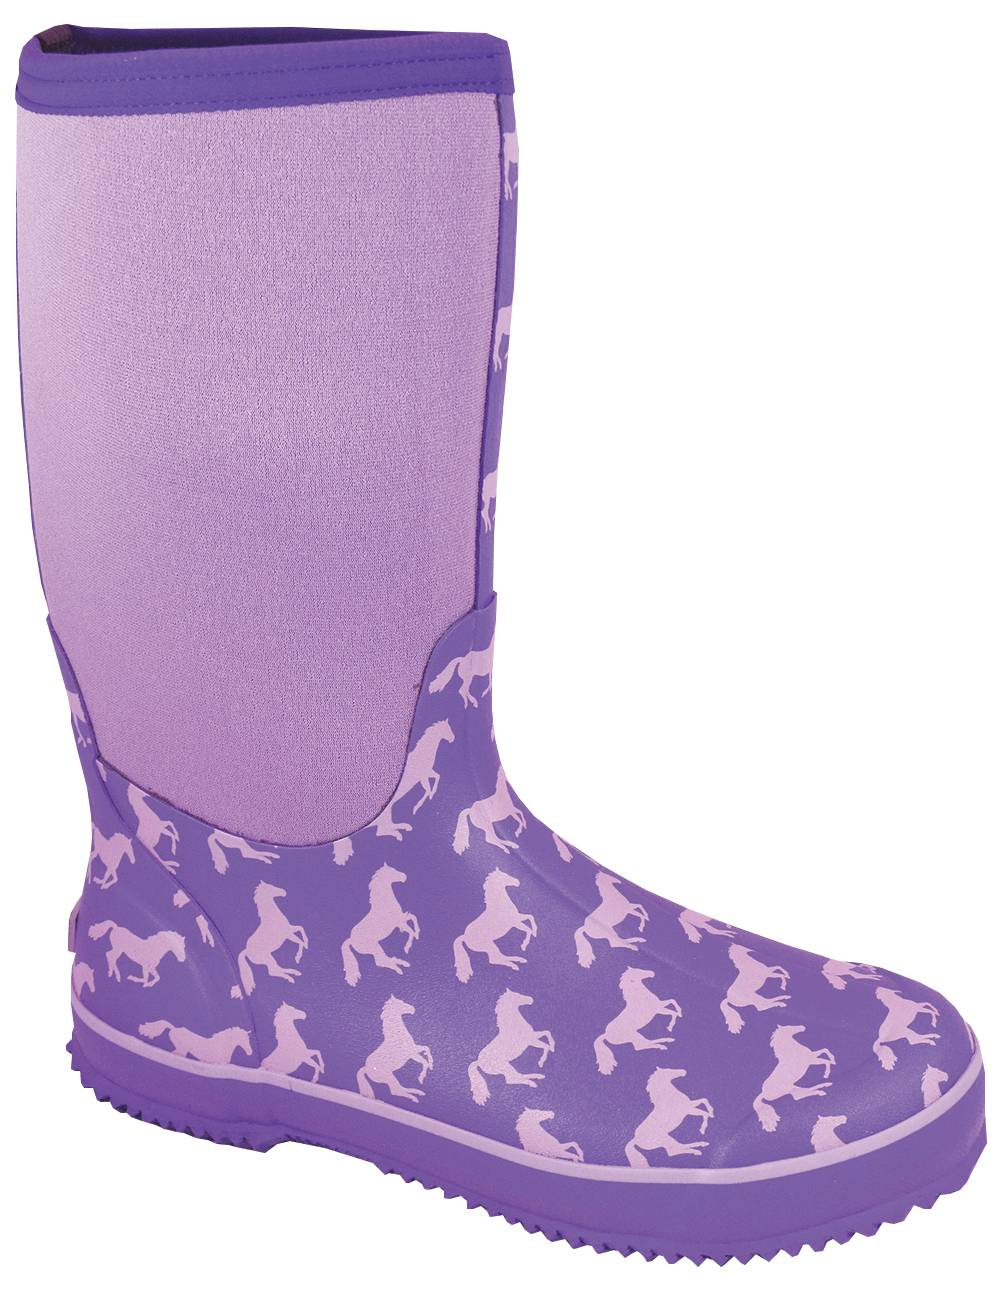 Smoky Mountain Womens Horses Amphibian Boots - Purple